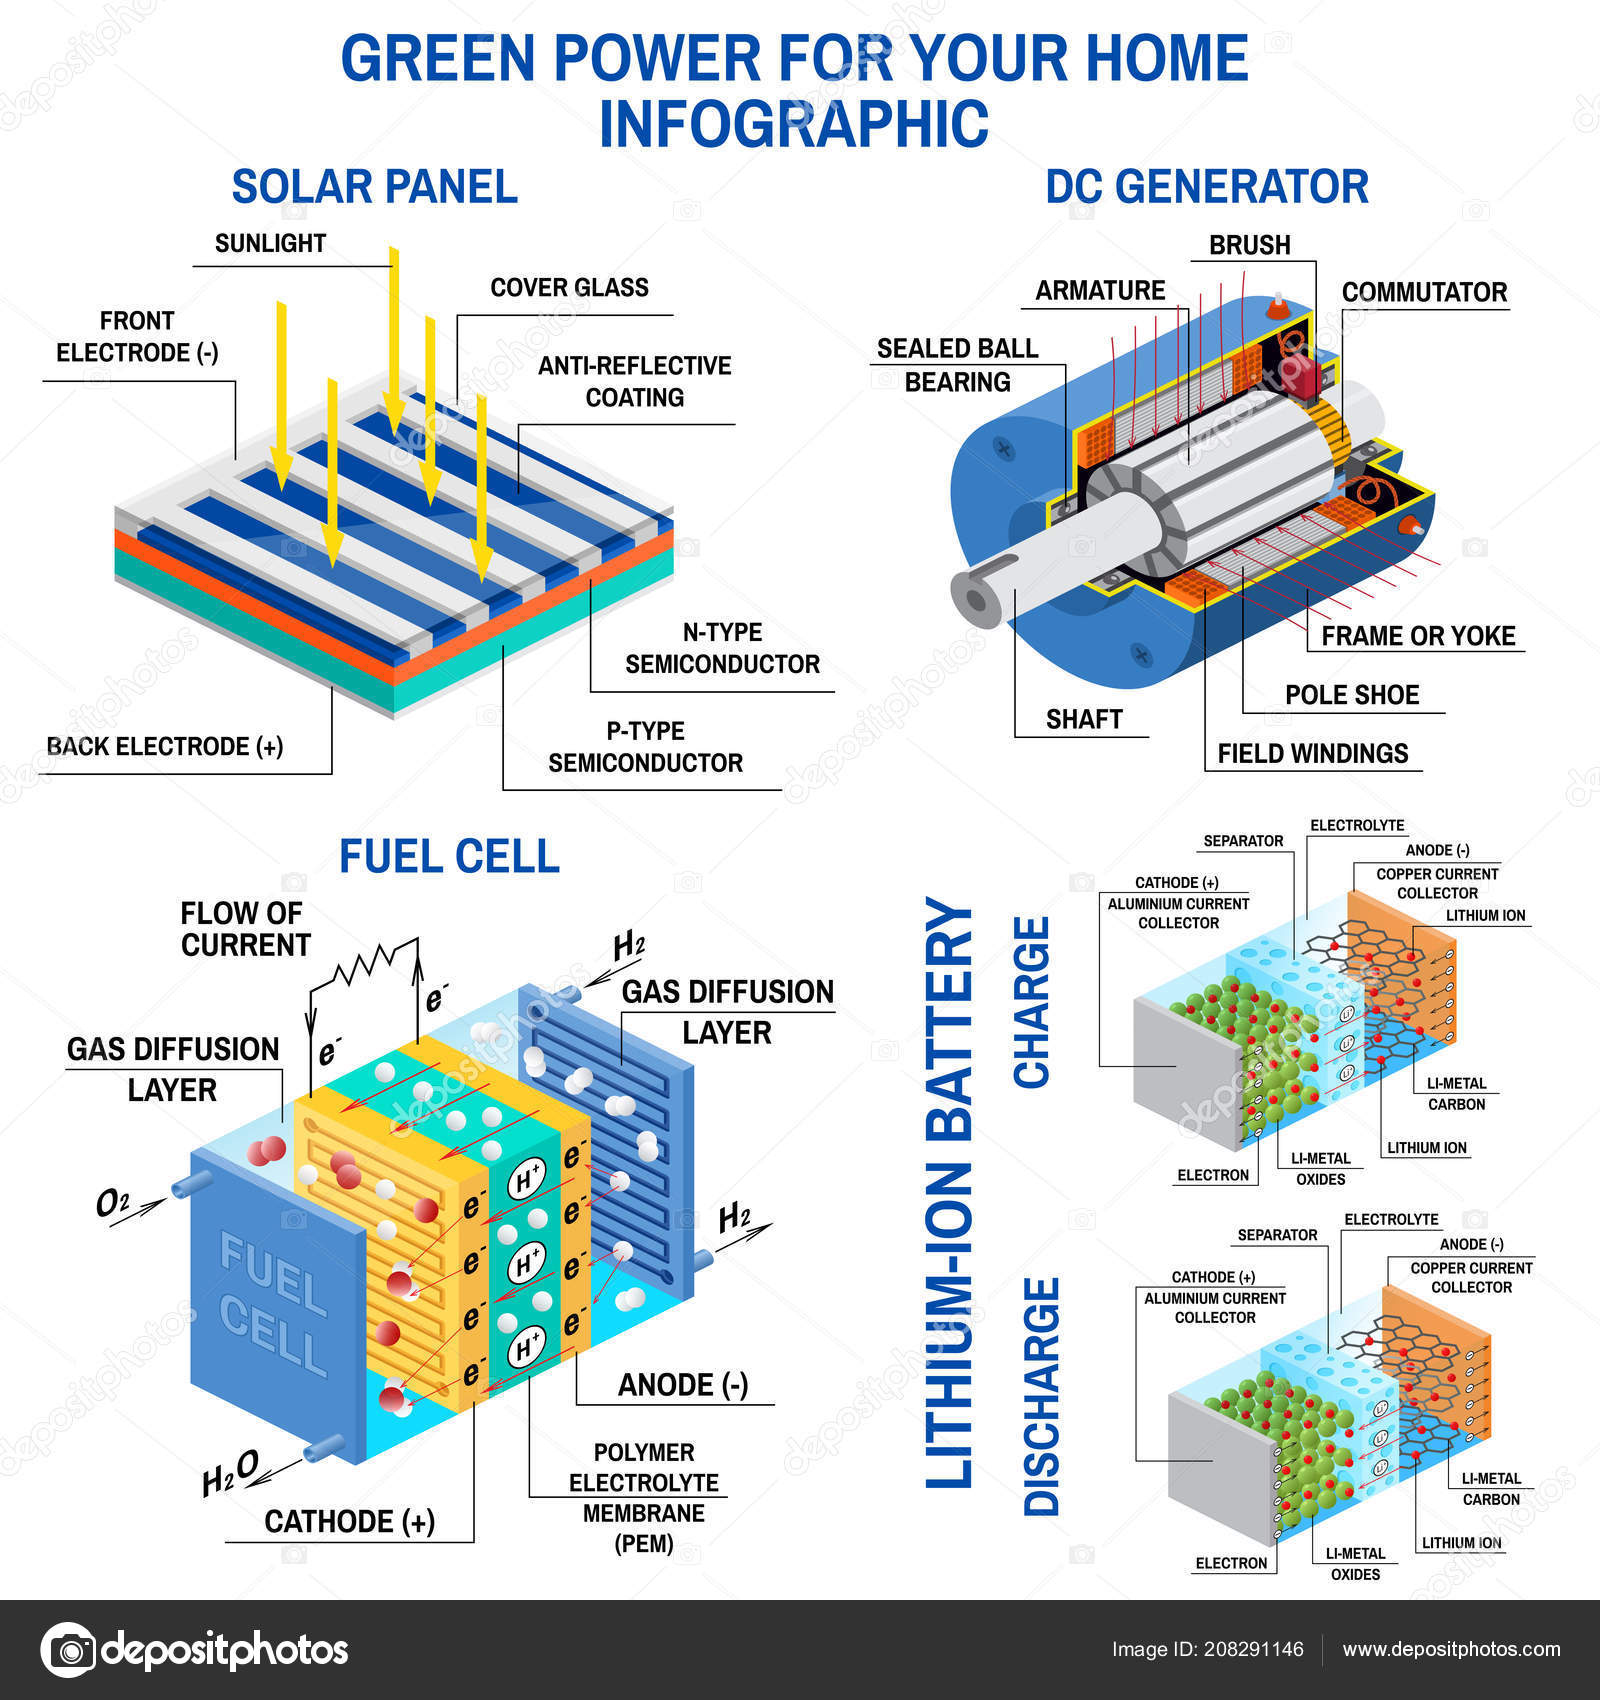 Solar panel, Dc generator, fuel cell and lithium battery